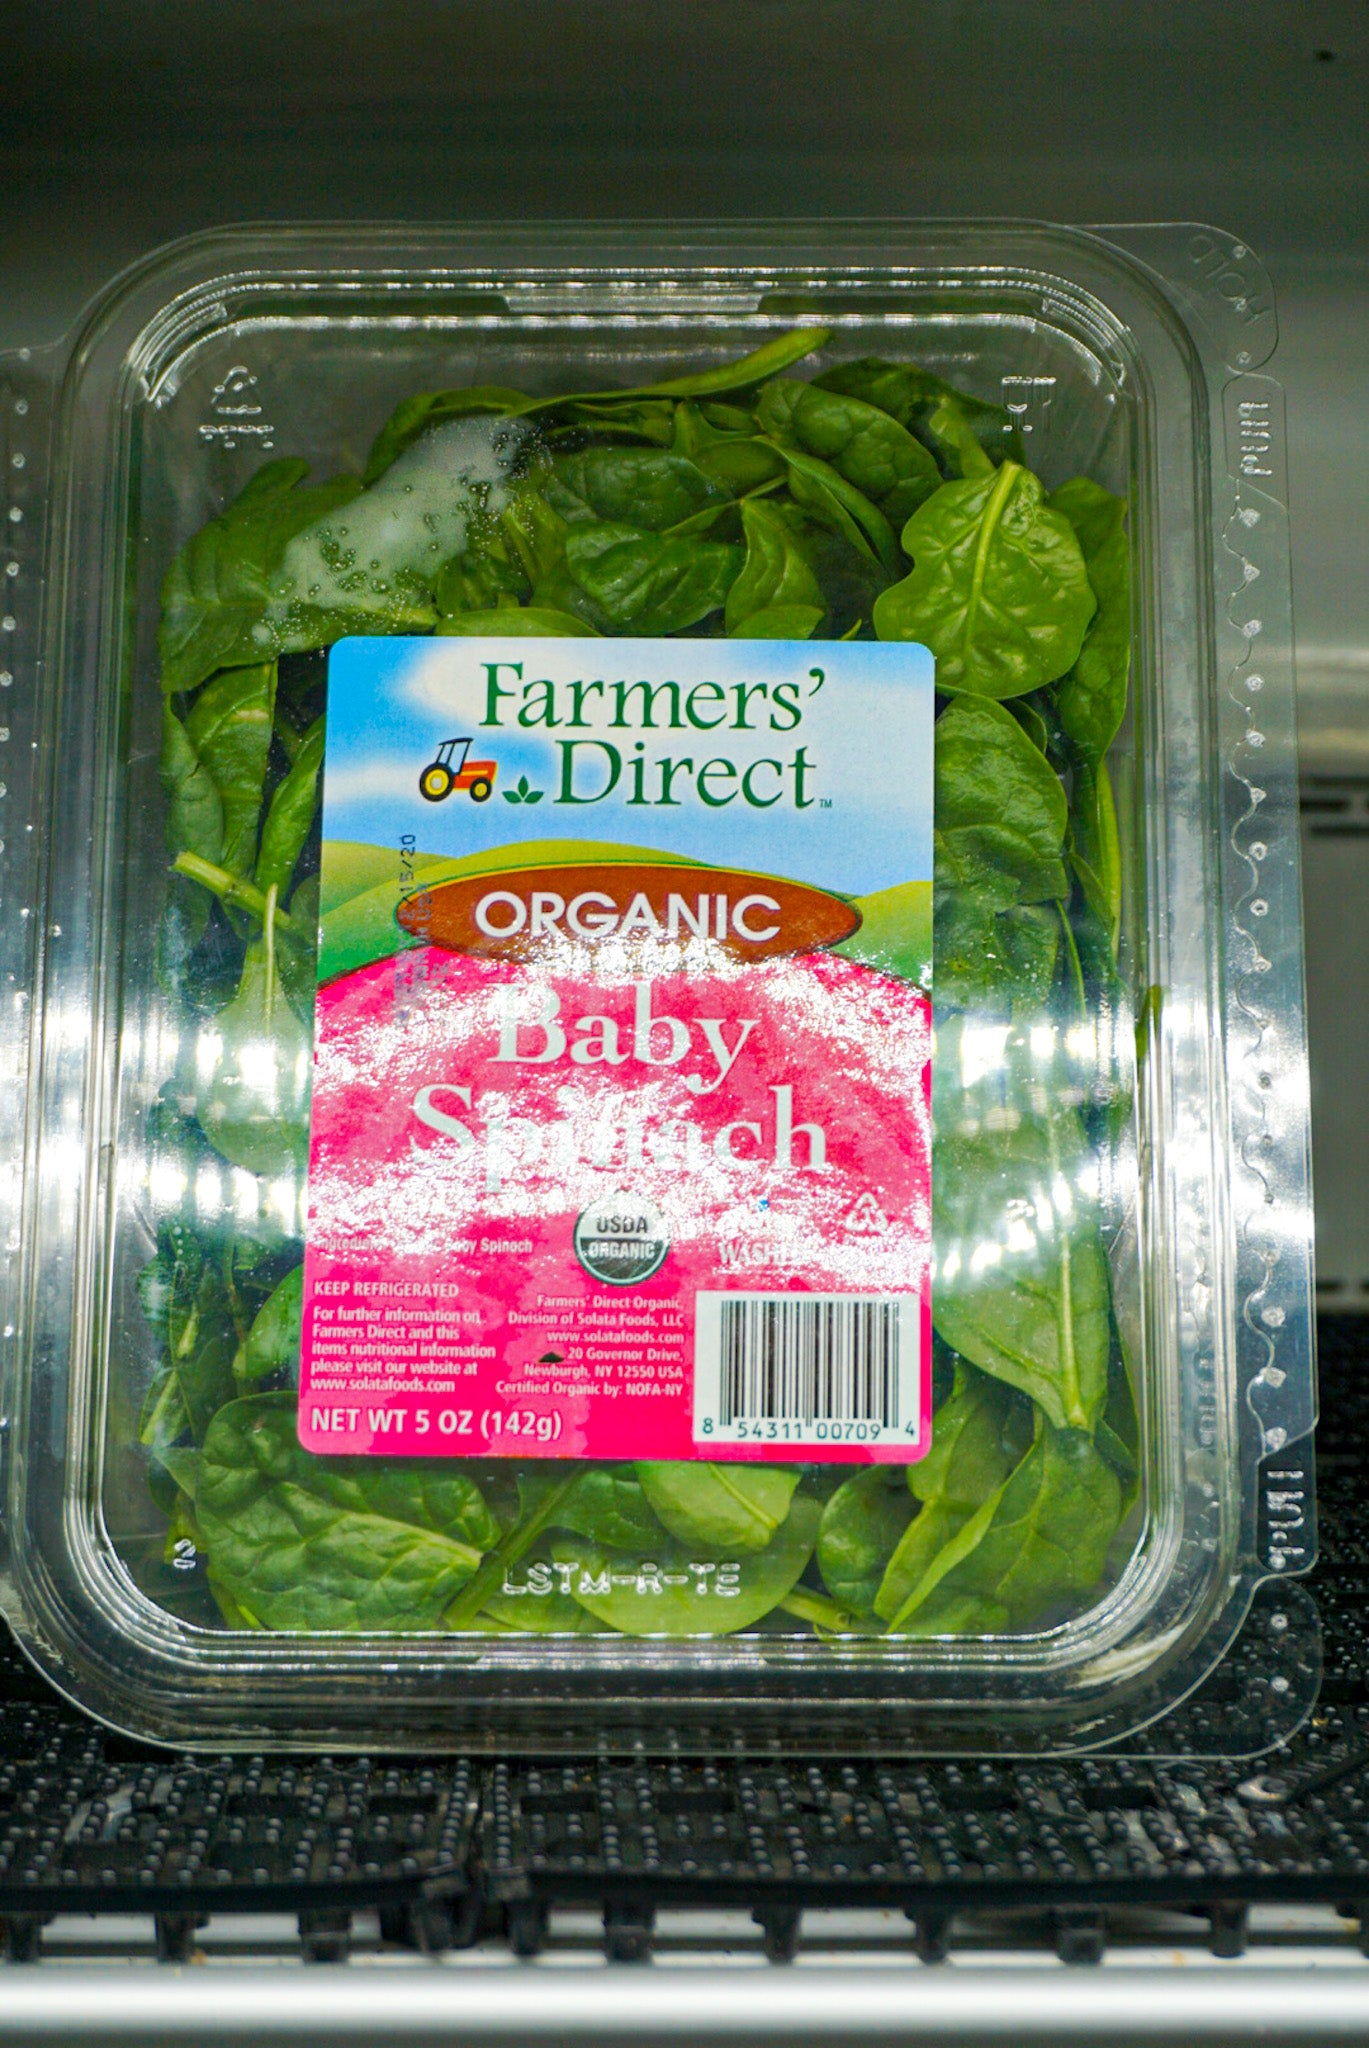 Farmers' Direct - Baby Spinach